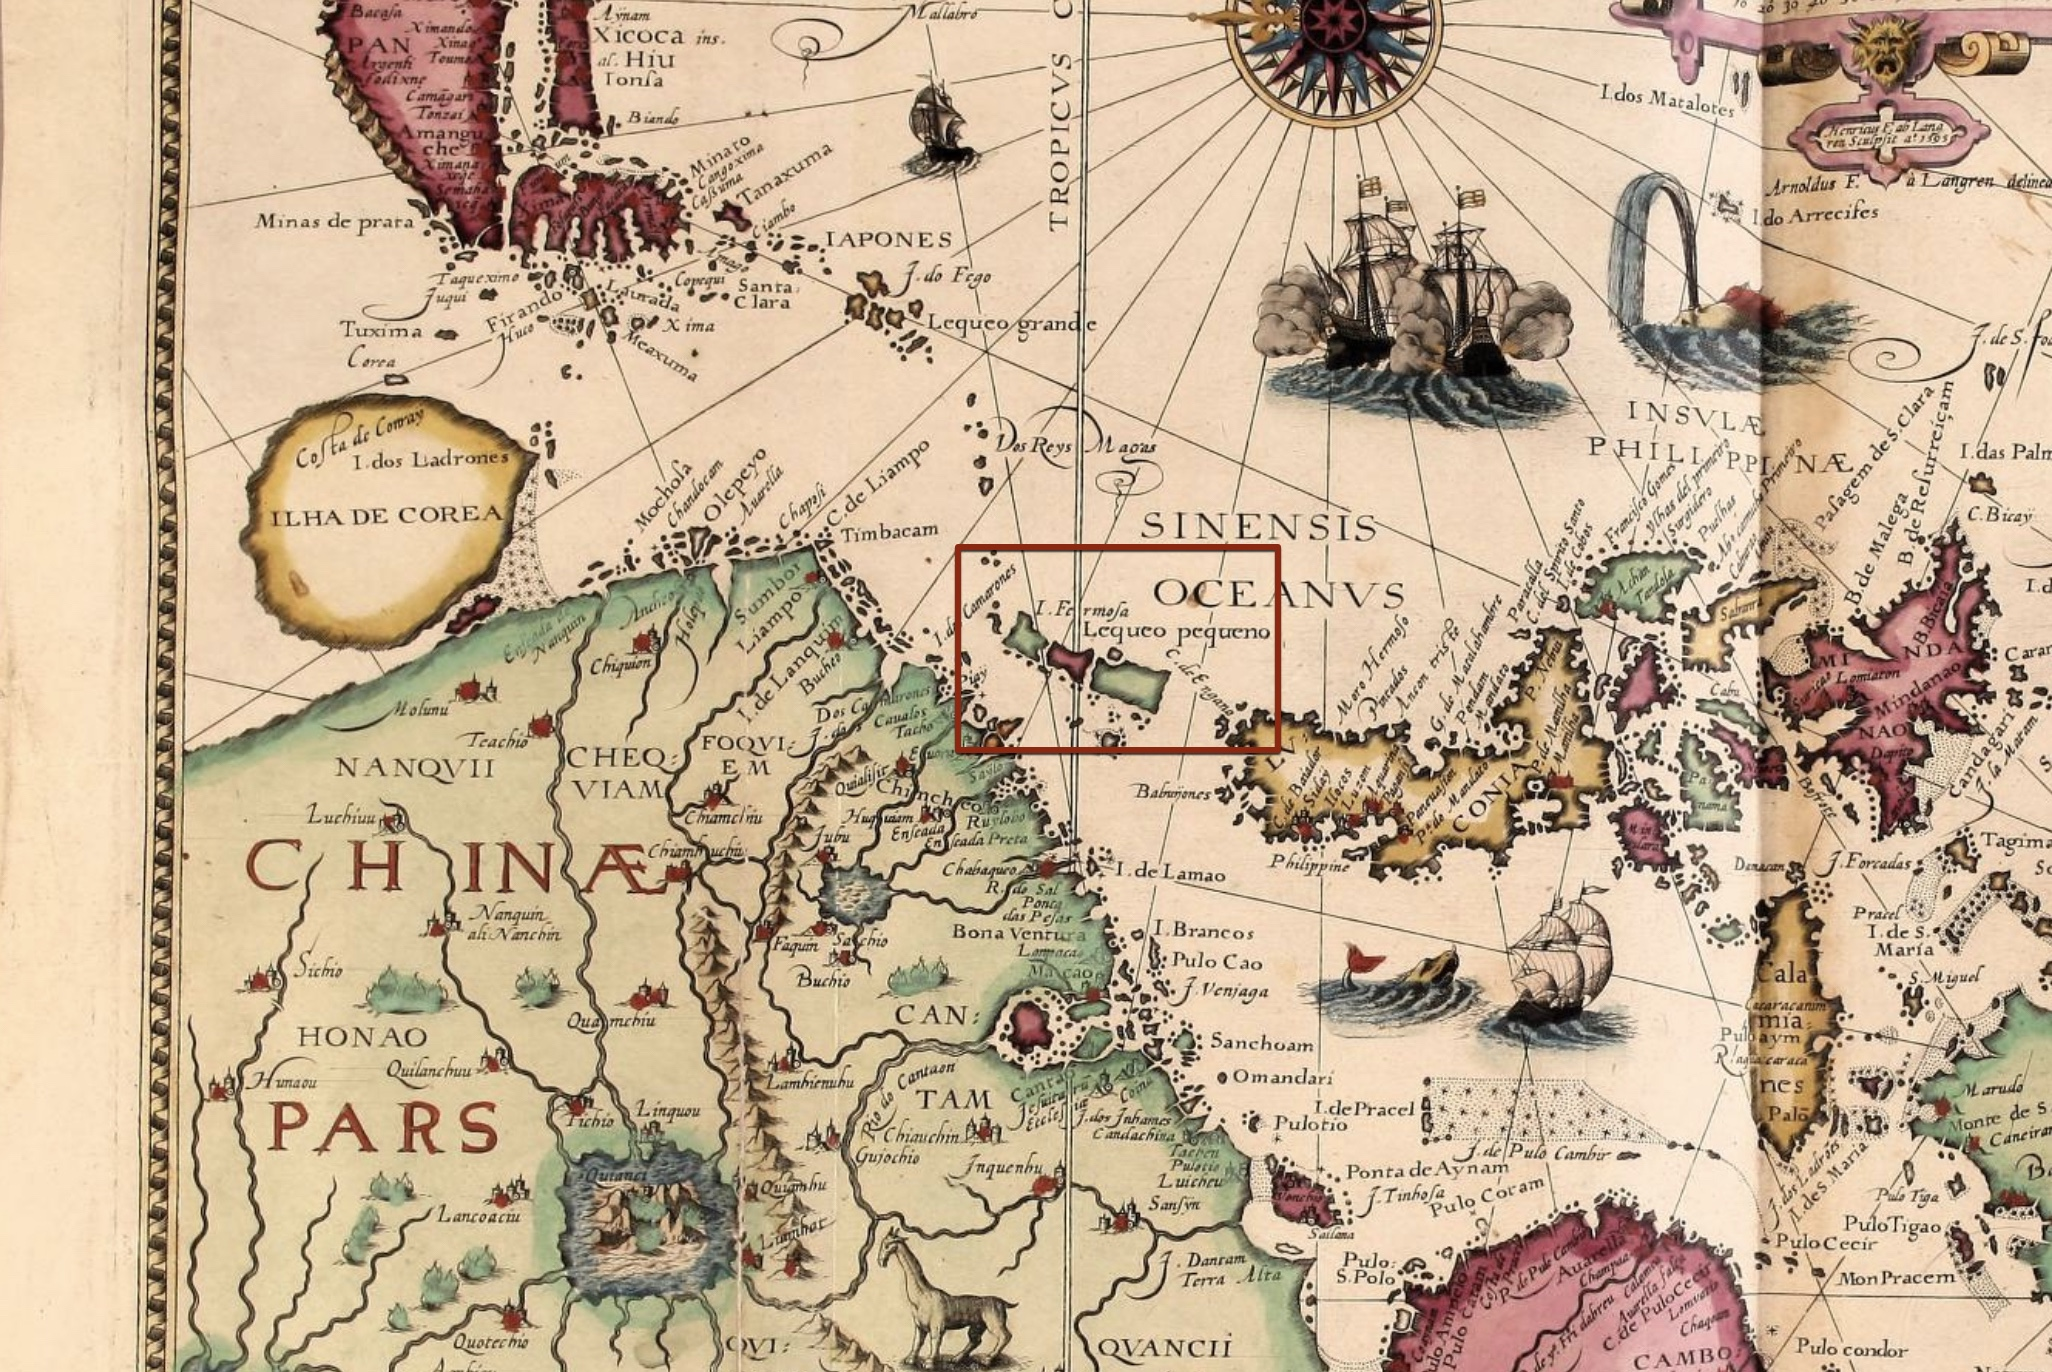 1596 map included in a book by Dutchman Jan Huygen van Linschoten. Early depiction of Taiwan, labeled I. Formosa